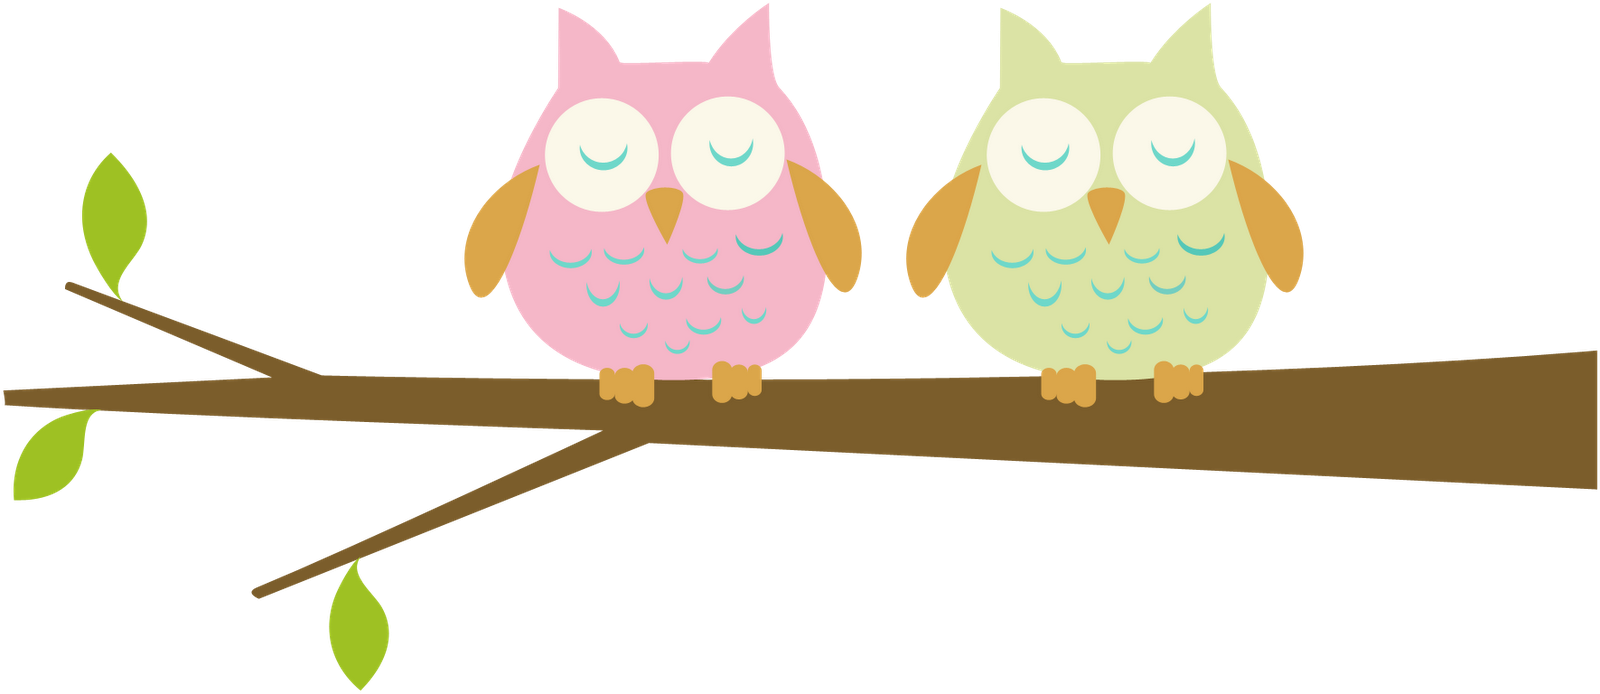 16 Baby Owl Clip Art Free Cliparts That You Can Download To You